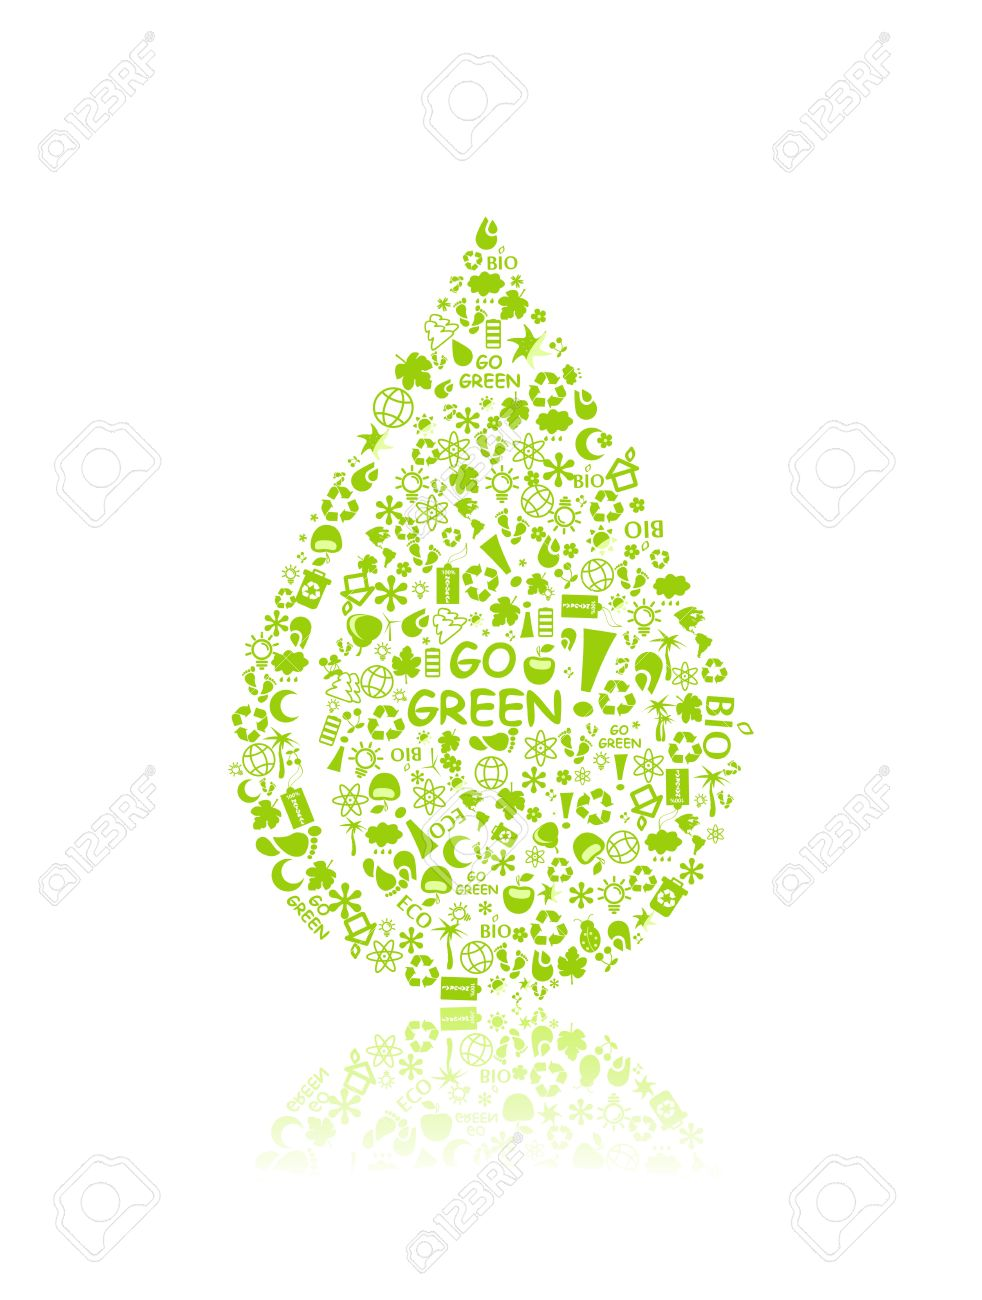 go green eco pattern in drop silhouette on white backdrop - bulb, leaf, globe, apple, house, trash. Ecology concept. Stock Vector - 11930319